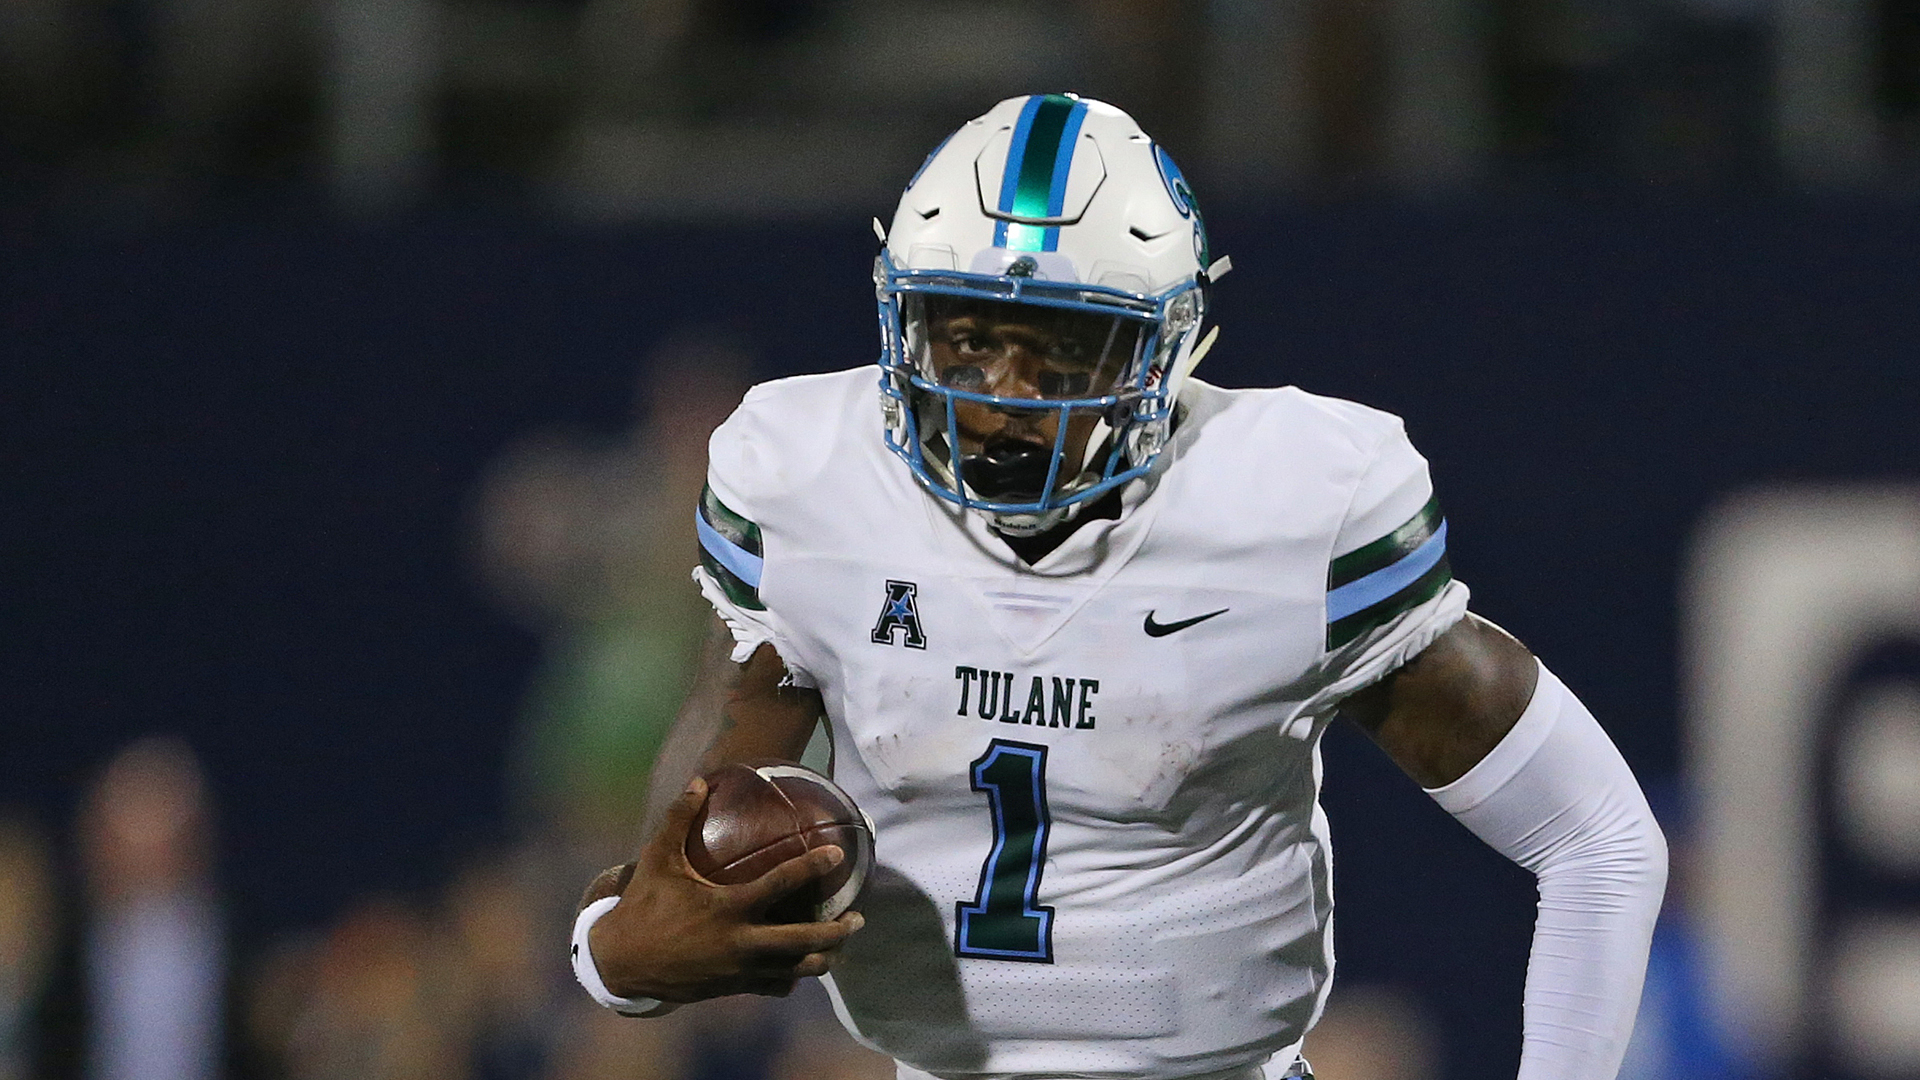 Tulane misses bowl game by inches on controversial call